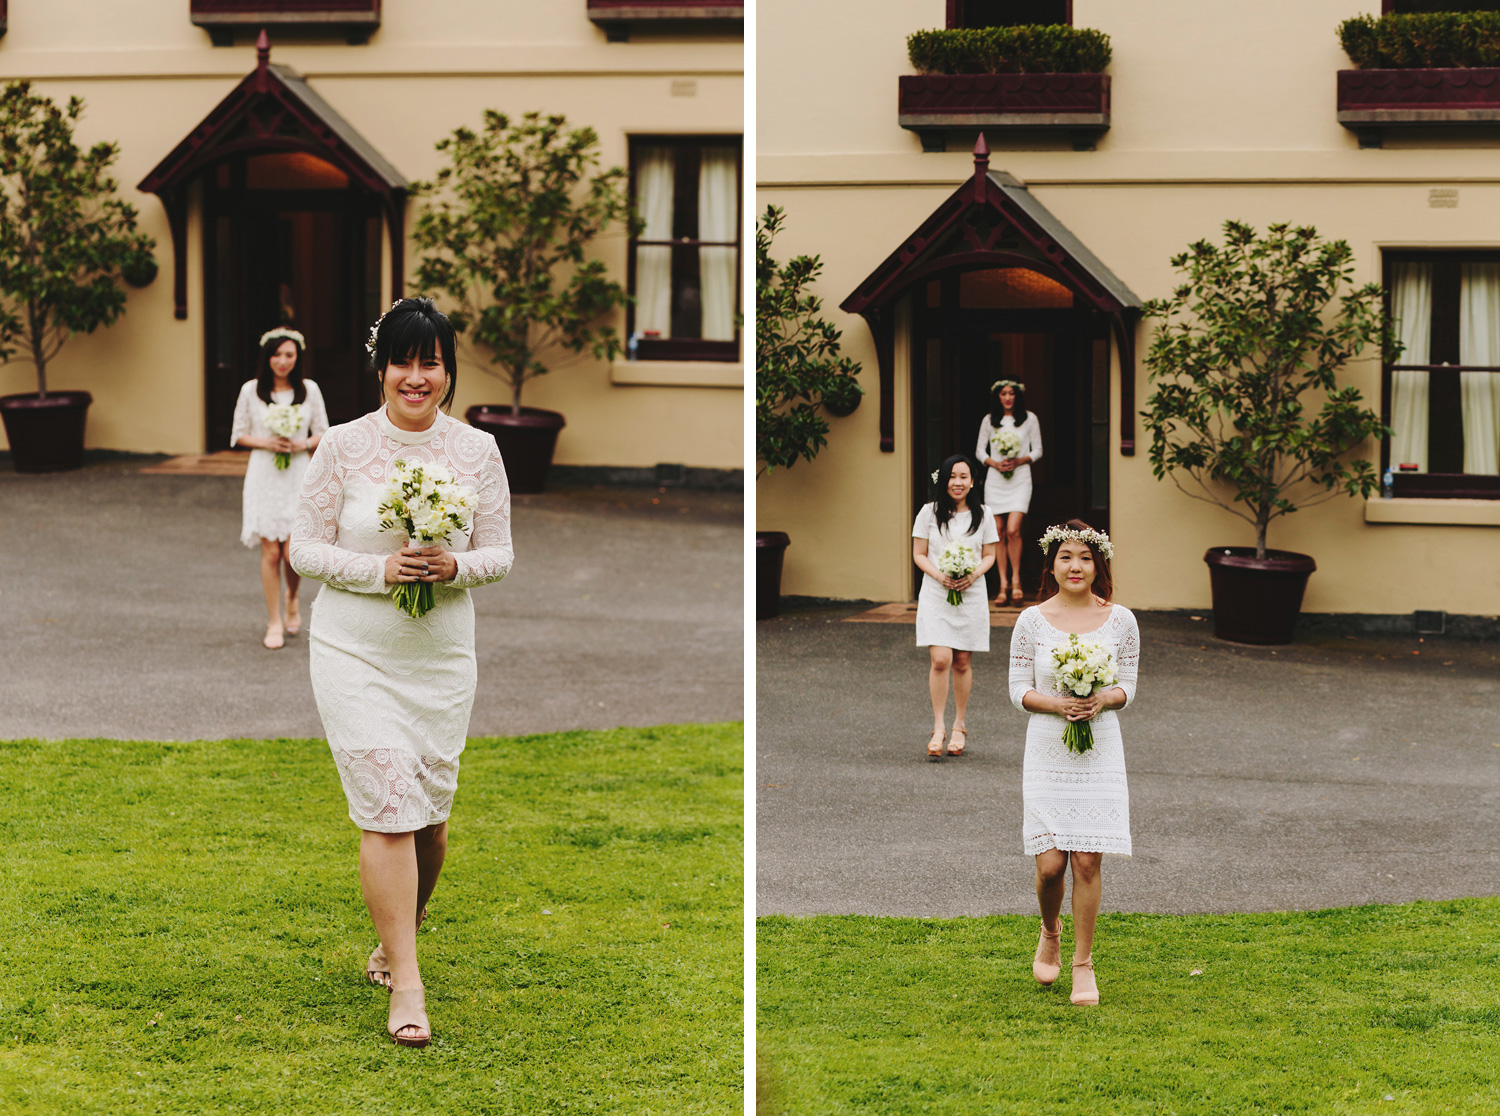 022-Sayher-&-Amelia-Melbourne-Wedding.jpg